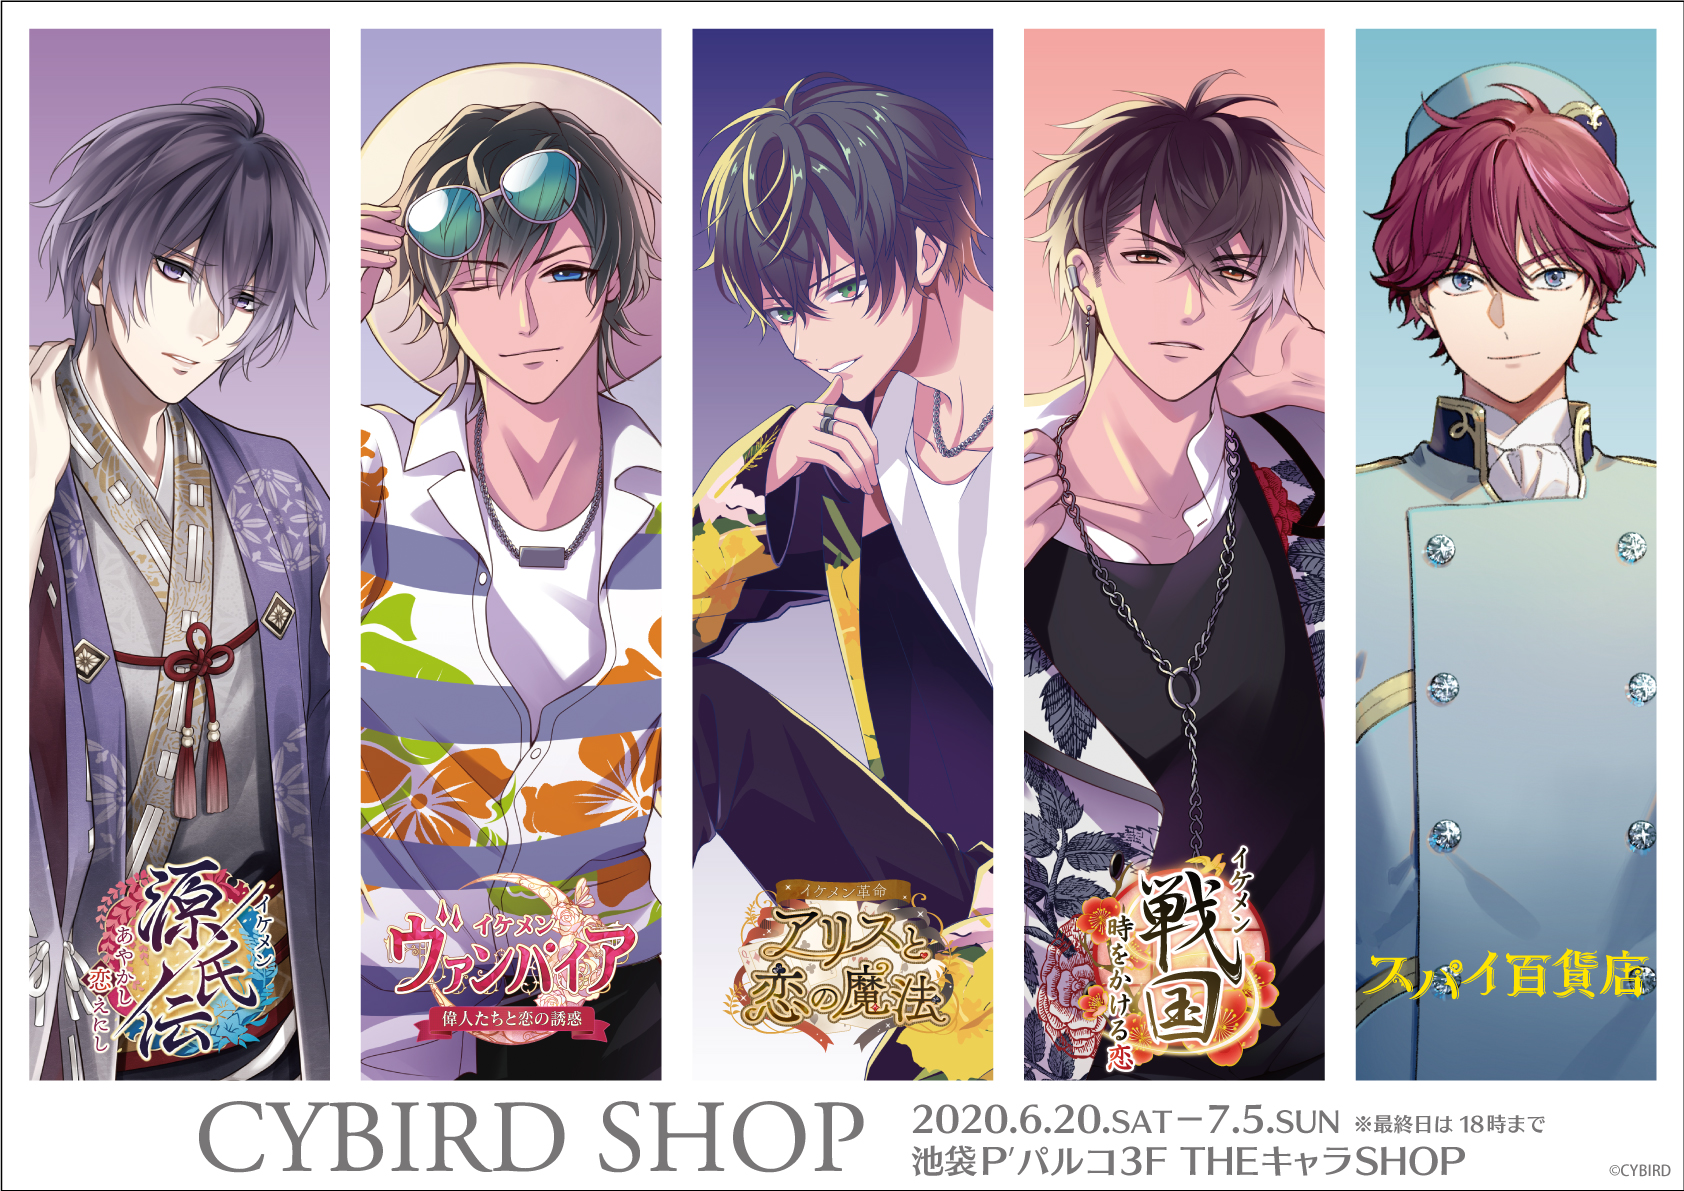 PROXY Service : CYBIRD SHOP